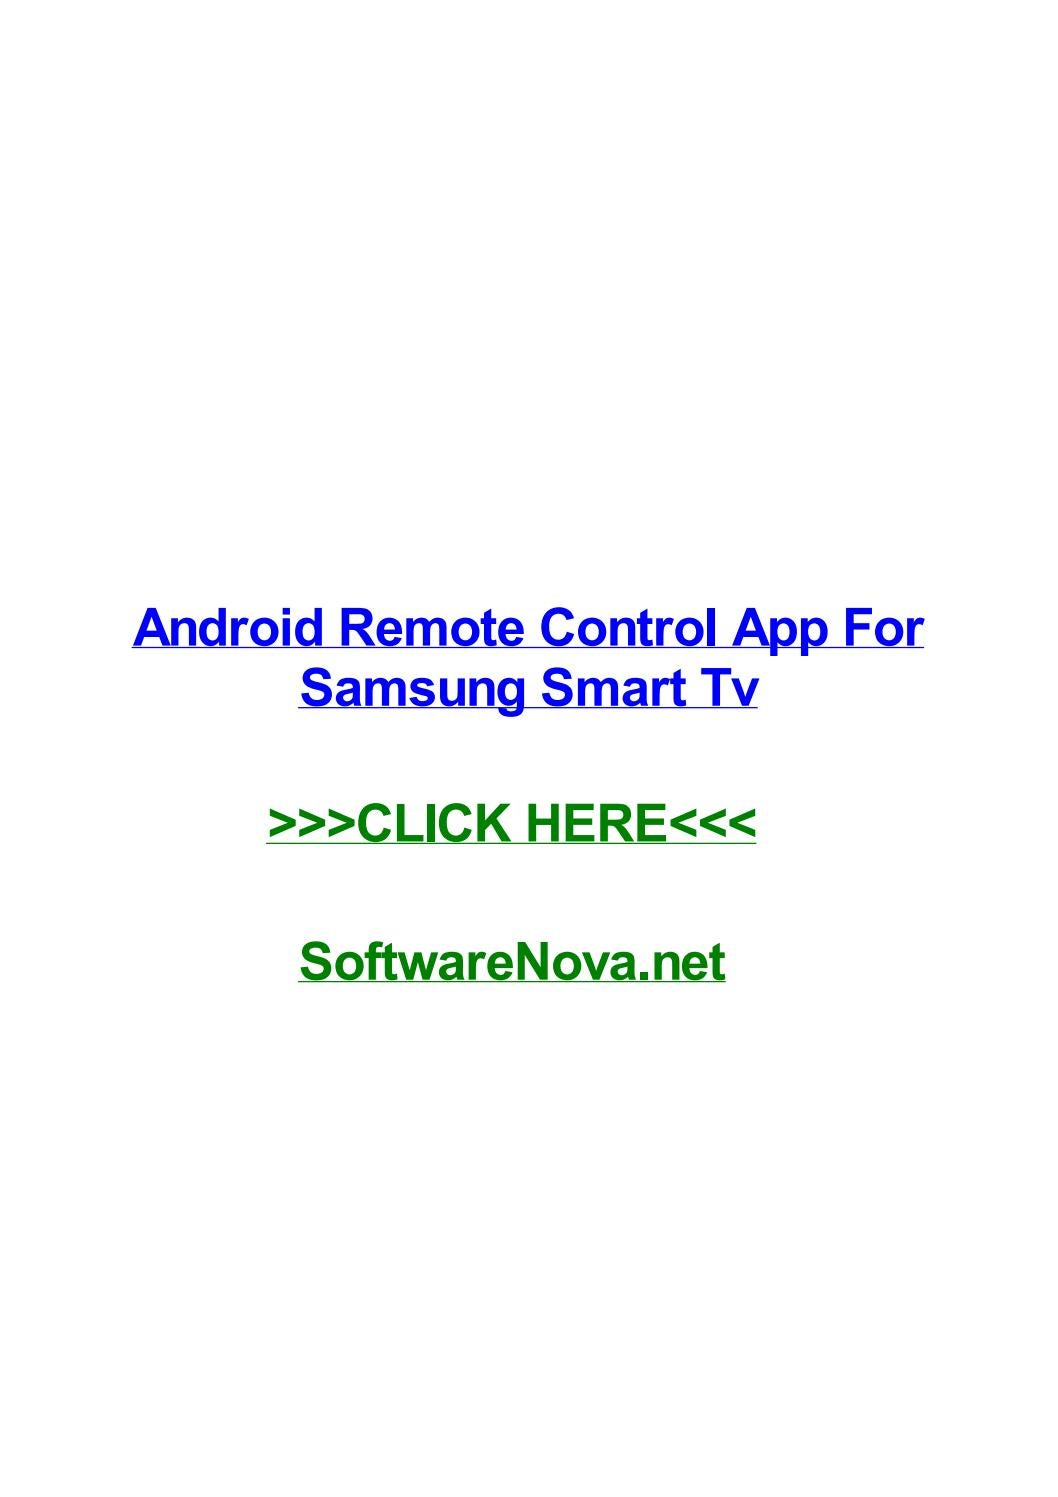 Android remote control app for samsung smart tv by